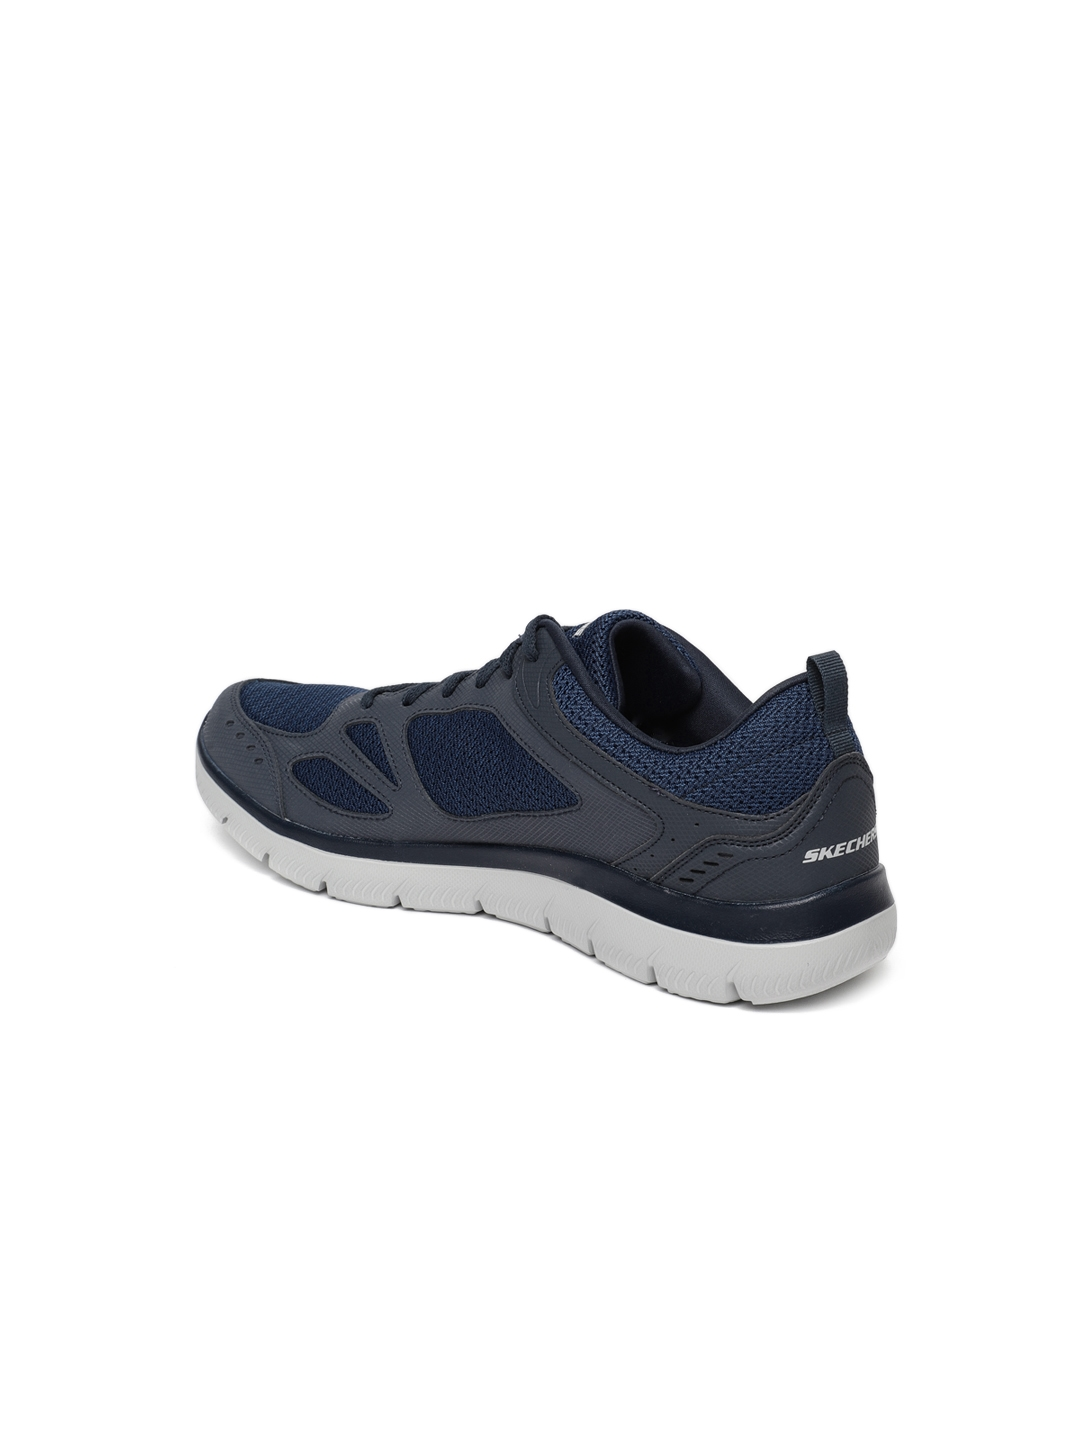 8c1ceee24eae Buy Skechers Men Navy Blue Summits South Rim Training Or Gym Shoes ...